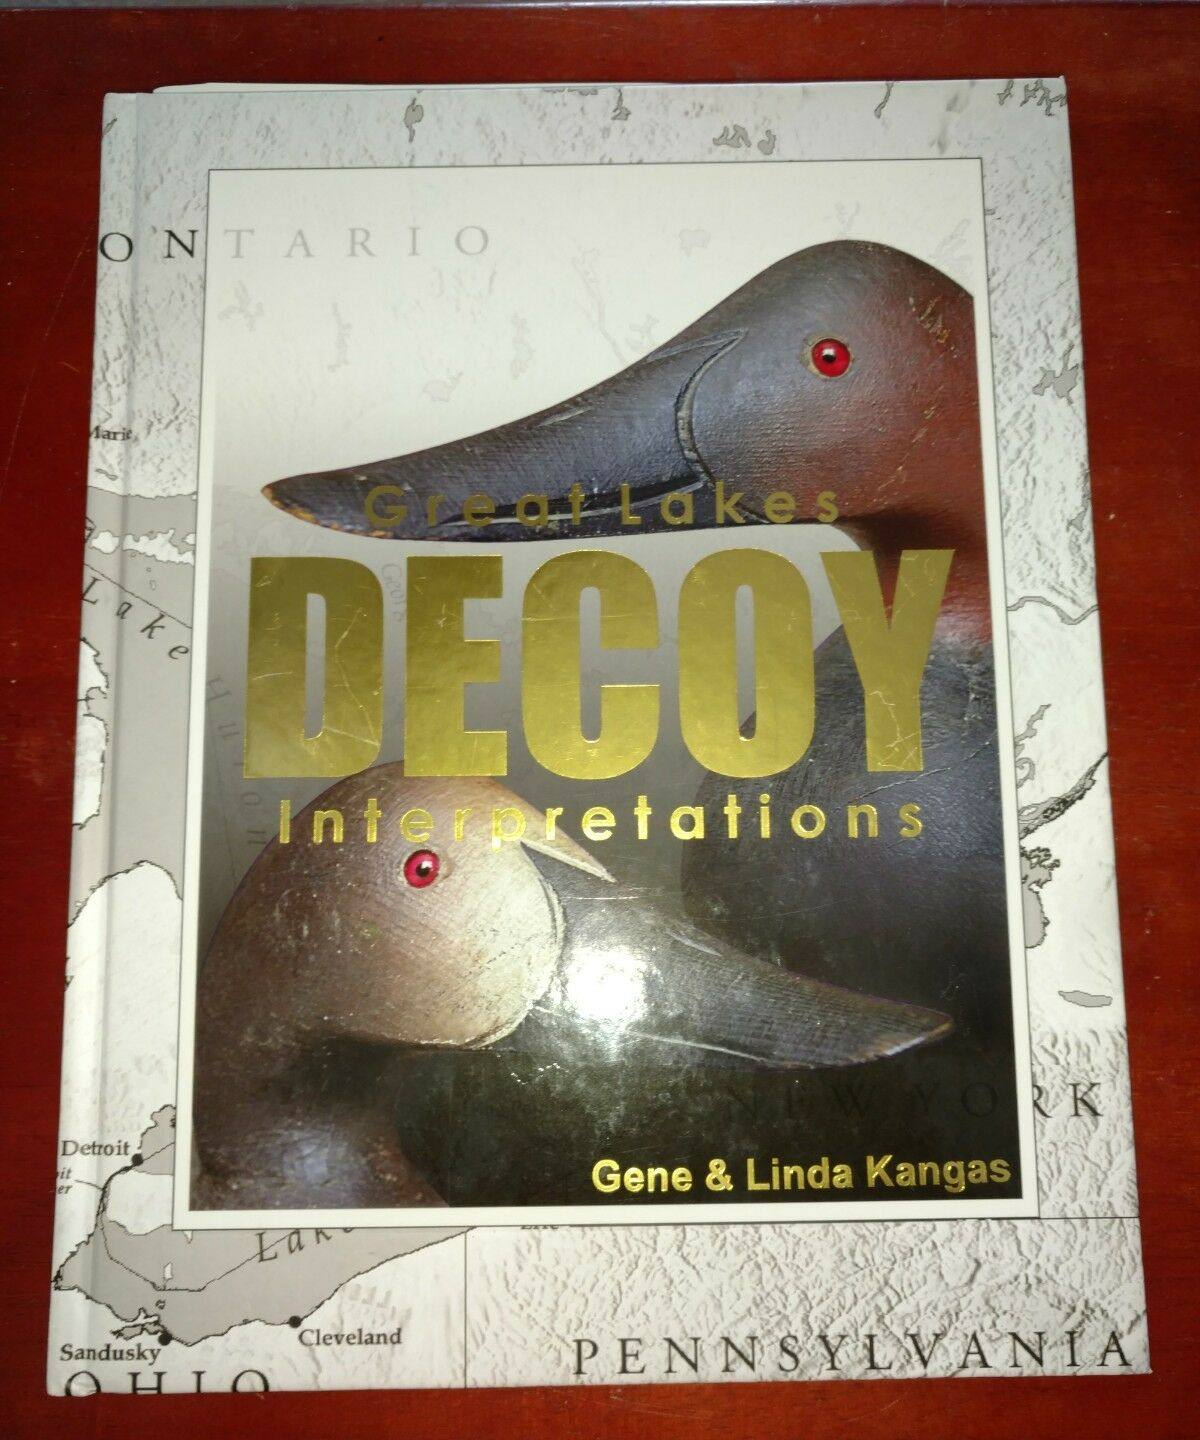 Great lakes decoy interpretation  Waterfowl Decoys  SIGNED KANGAS book  100% brand new with original quality